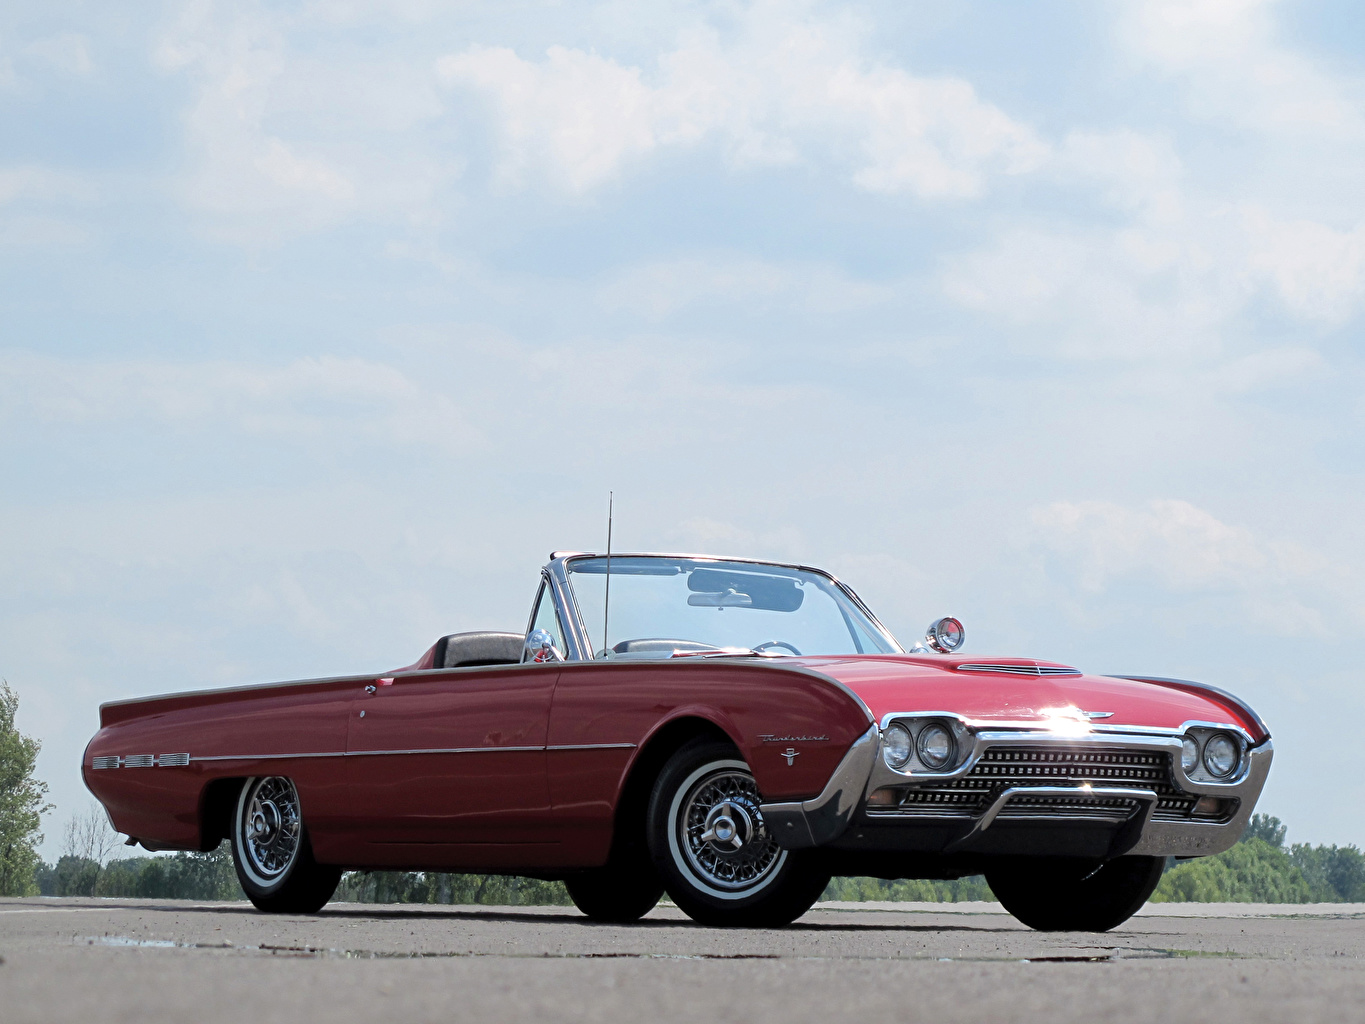 Фотографии Форд Thunderbird Sports Roadster 1962 Родстер Автомобили Ford Авто Машины